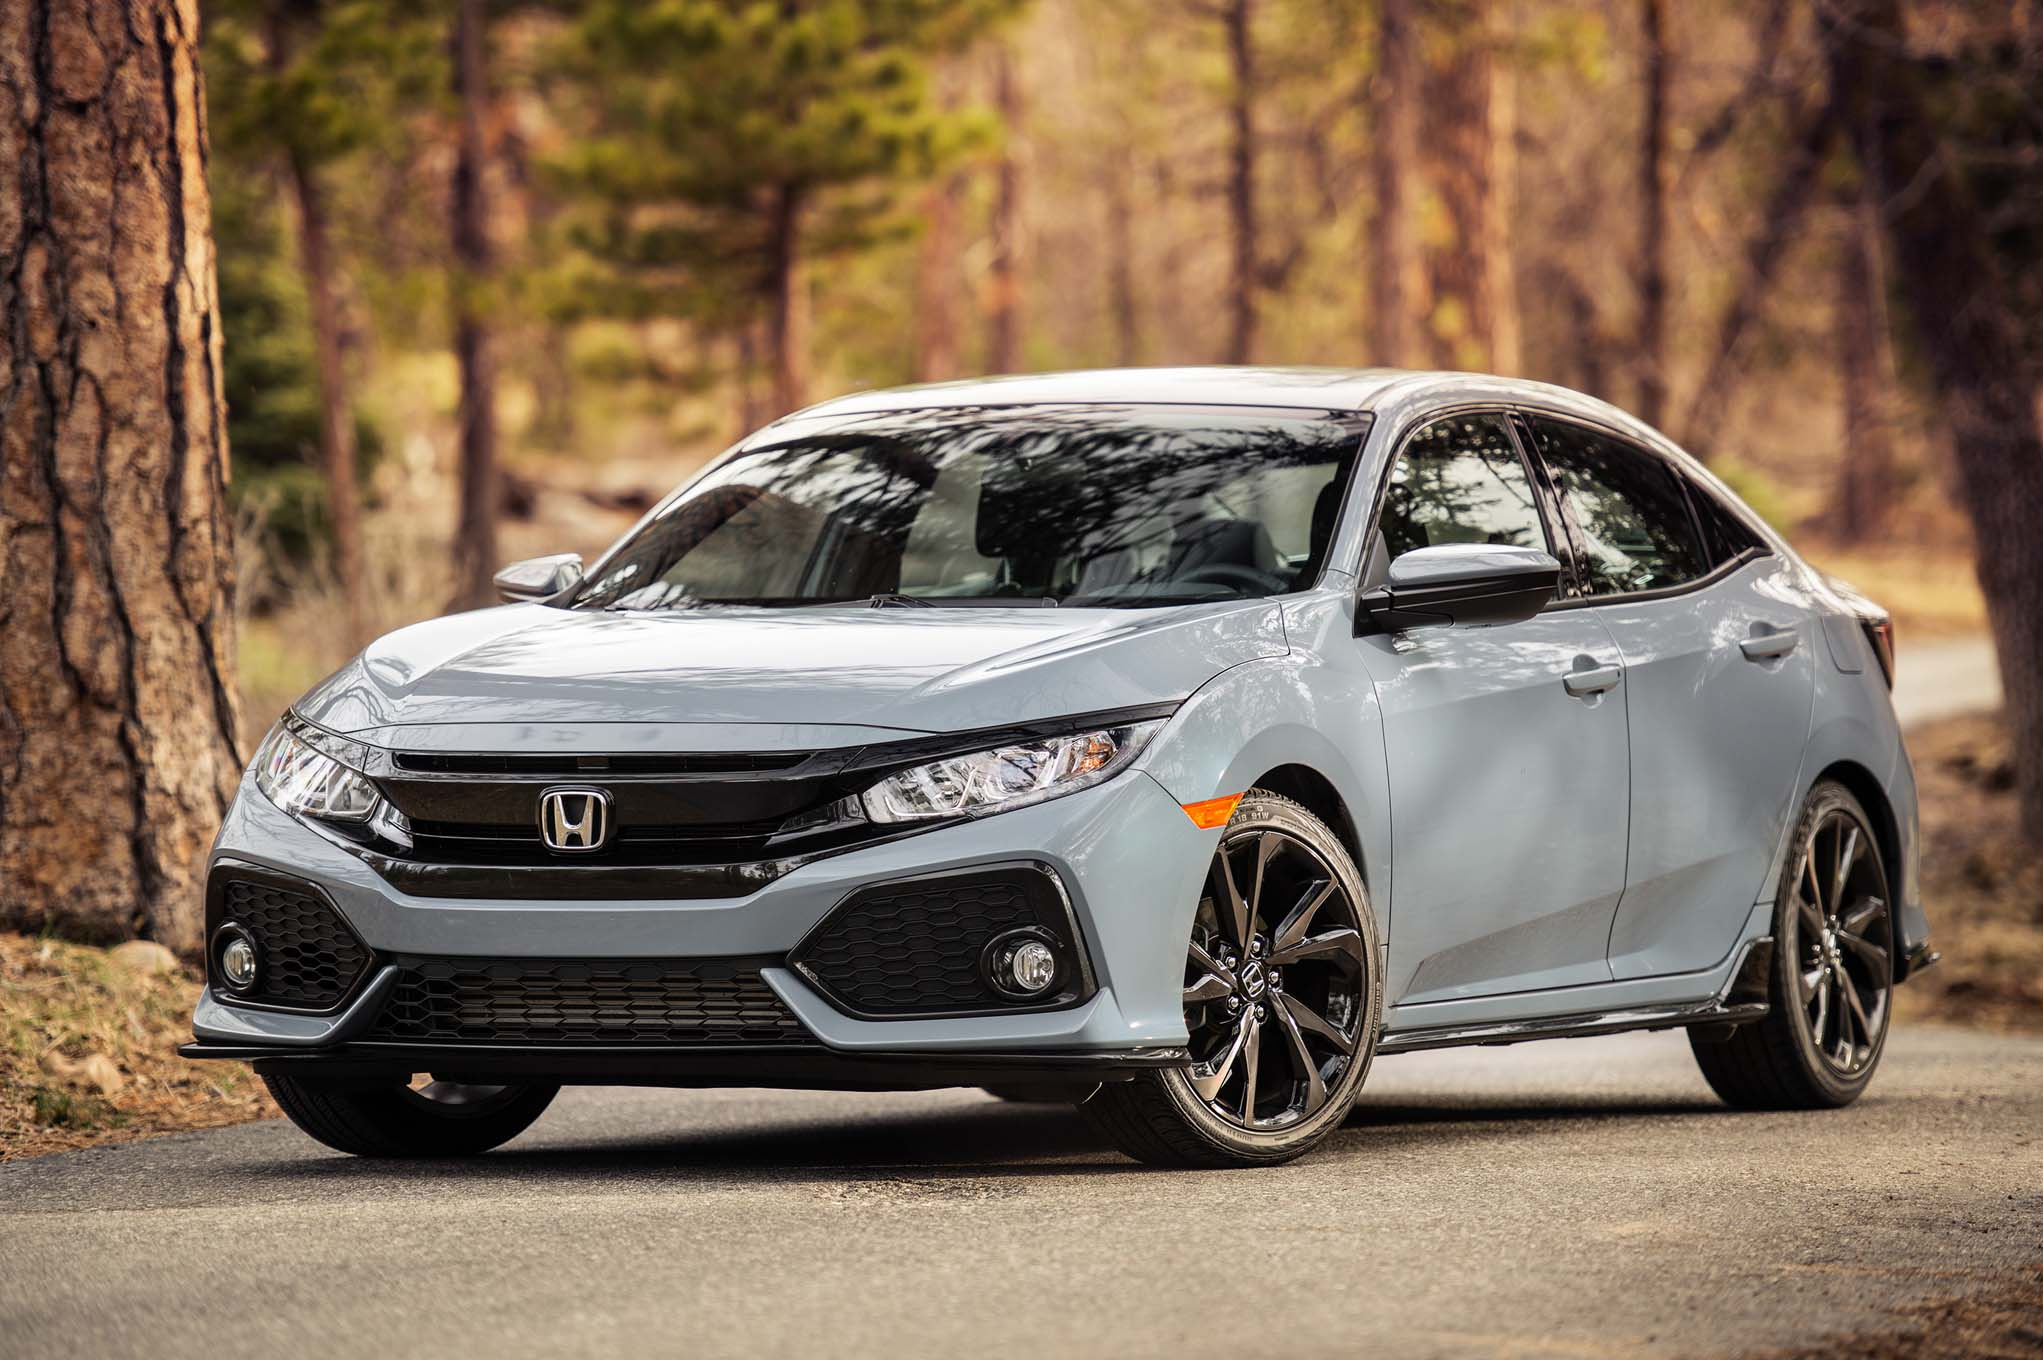 The tenthgeneration Honda Civic challenges the best family hatchbacks head on although options are limited